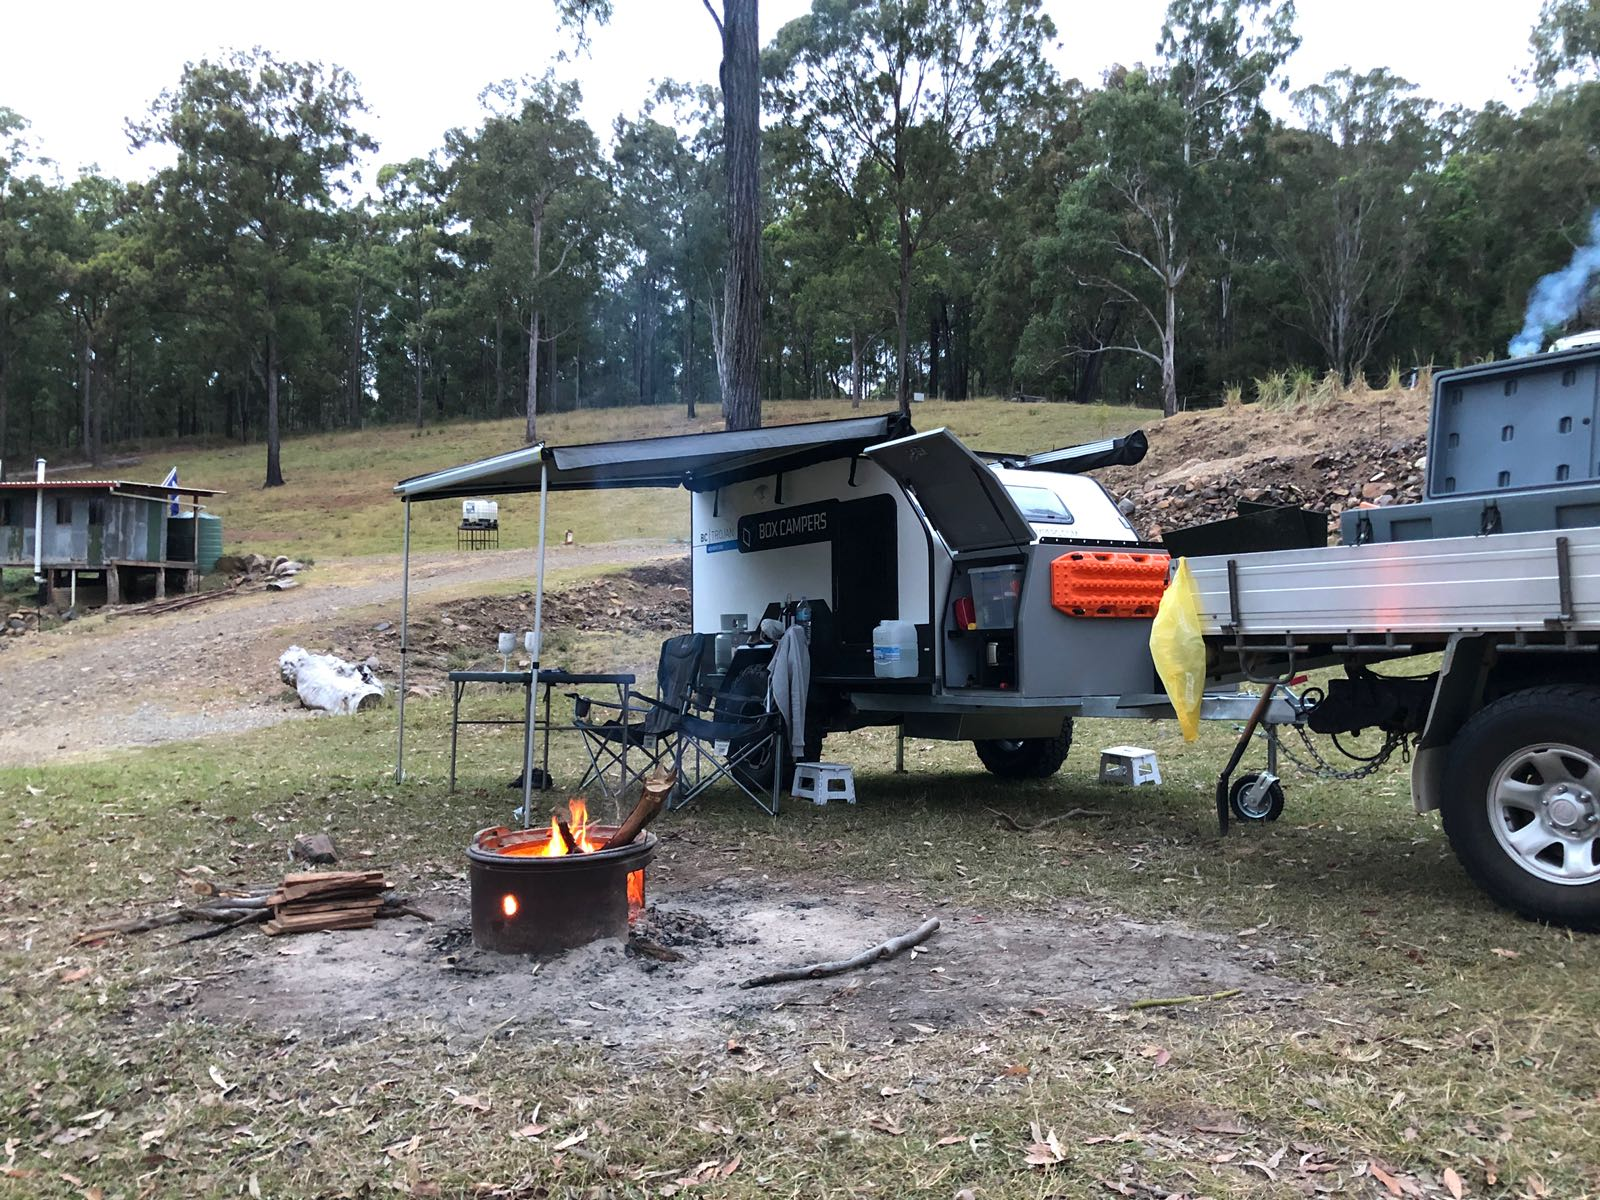 This fully insulated, power packed camper trailer is set up in less than a couple of minutes.